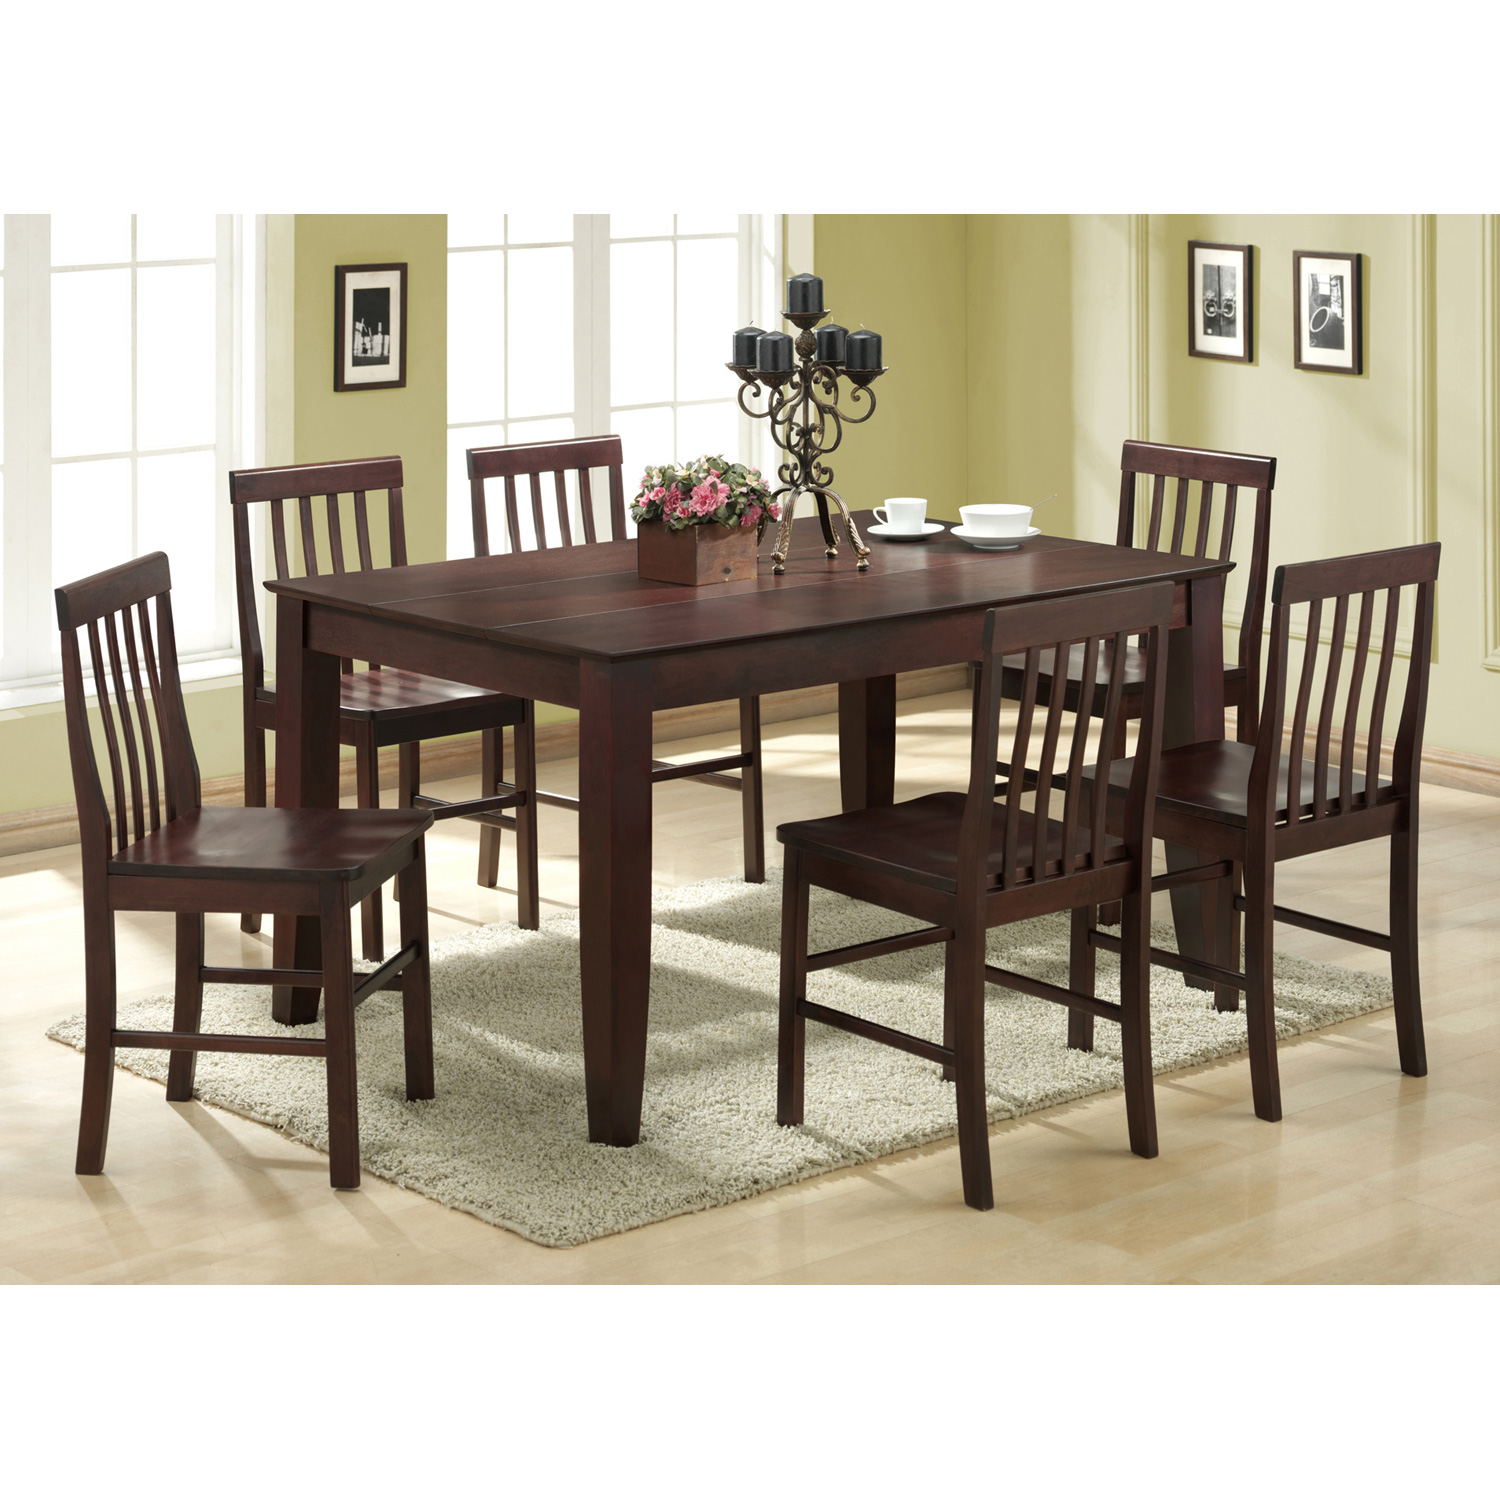 Abigail 7-Piece Wood Dining Set in Espresso